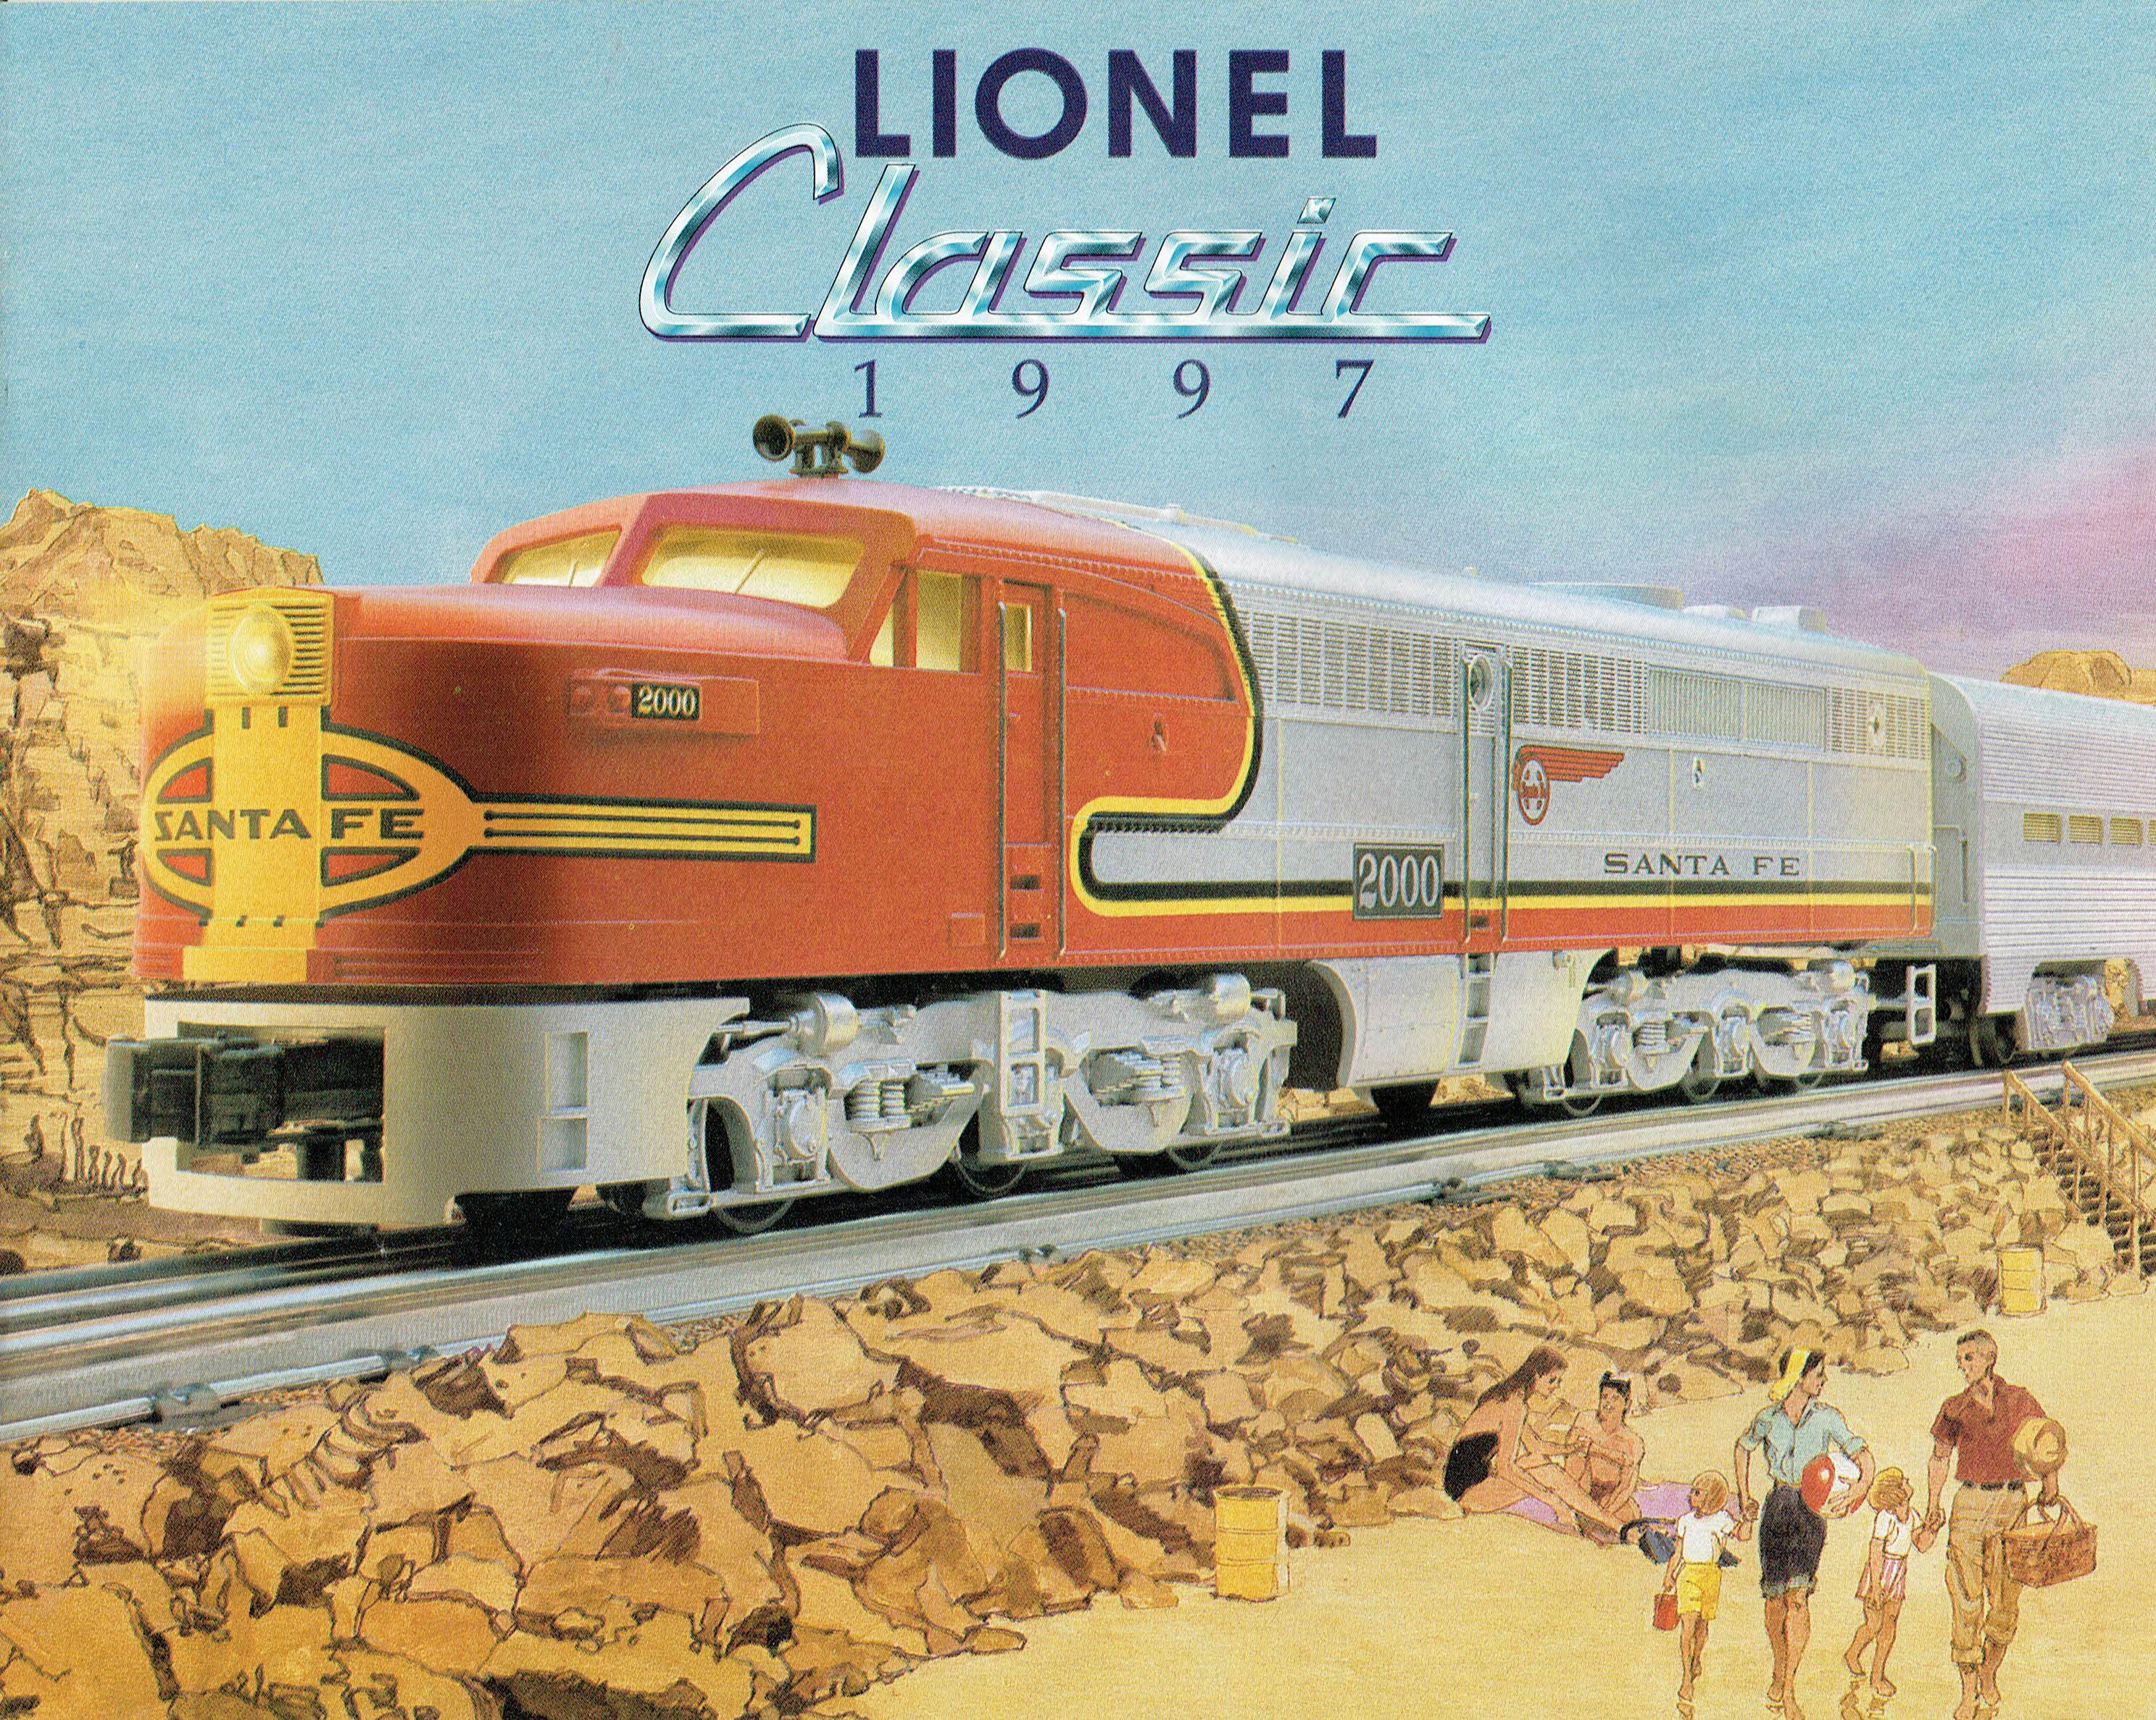 Lionel 1997 Classic (Santa Fe on cover) Catalog image